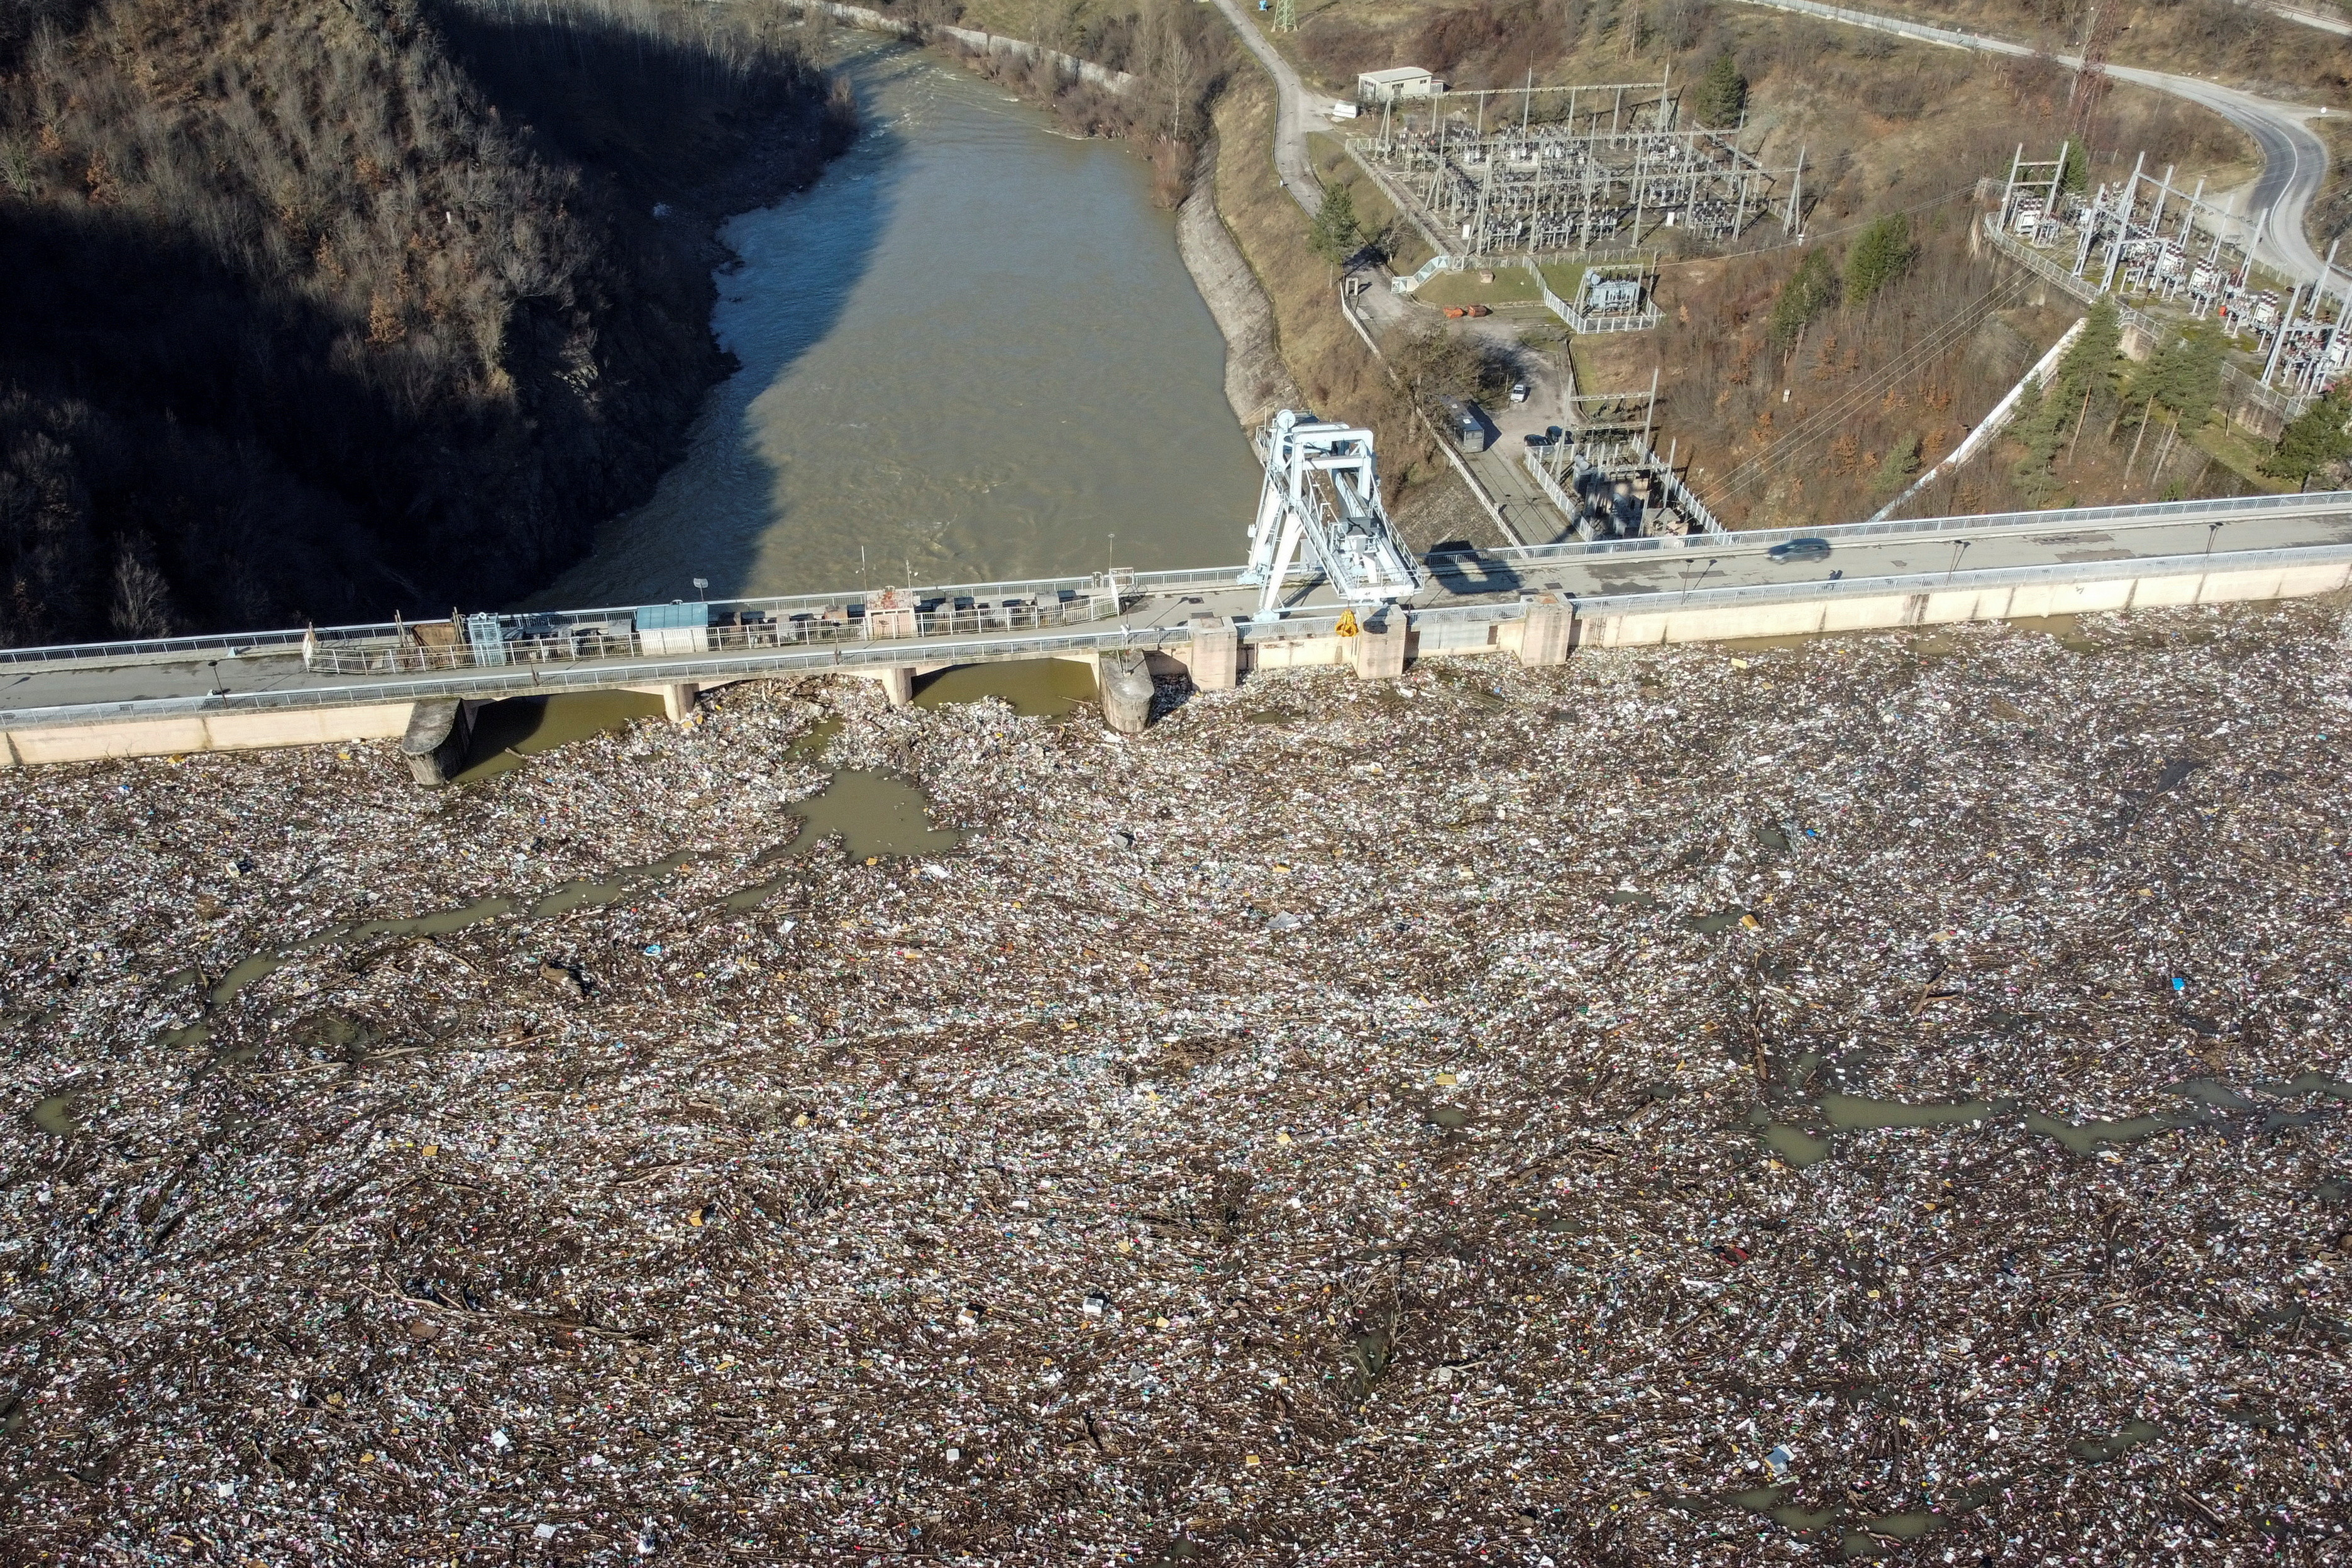 General view of plastic trash littering the polluted Potpecko Lake near a dam's hydroelectric plant, in Serbia January 5, 2021. Picture taken with a drone on January 5, 2021. REUTERS/Branko Filipovic - RC2E2L9C9NRE